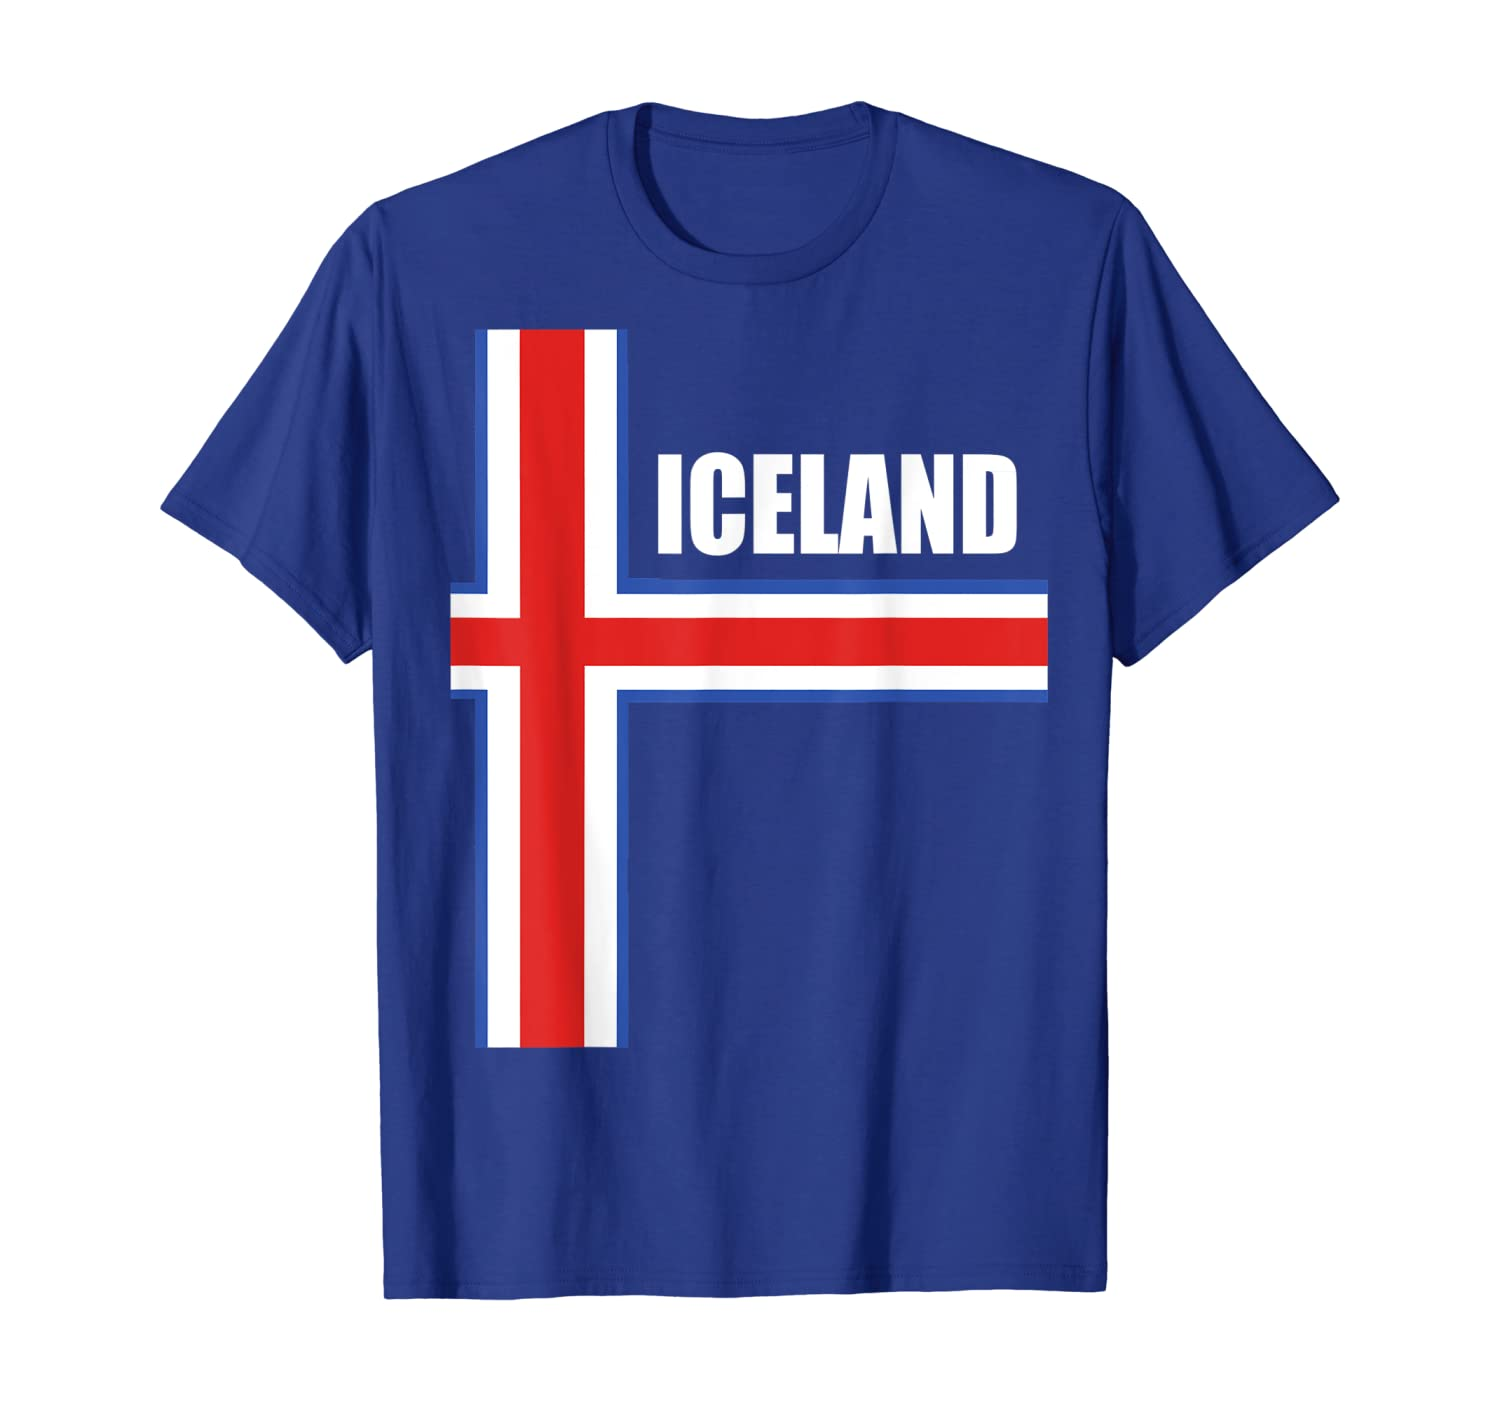 Iceland Soccer Jersey Style Flag Fan Icelandic Team National T-Shirt